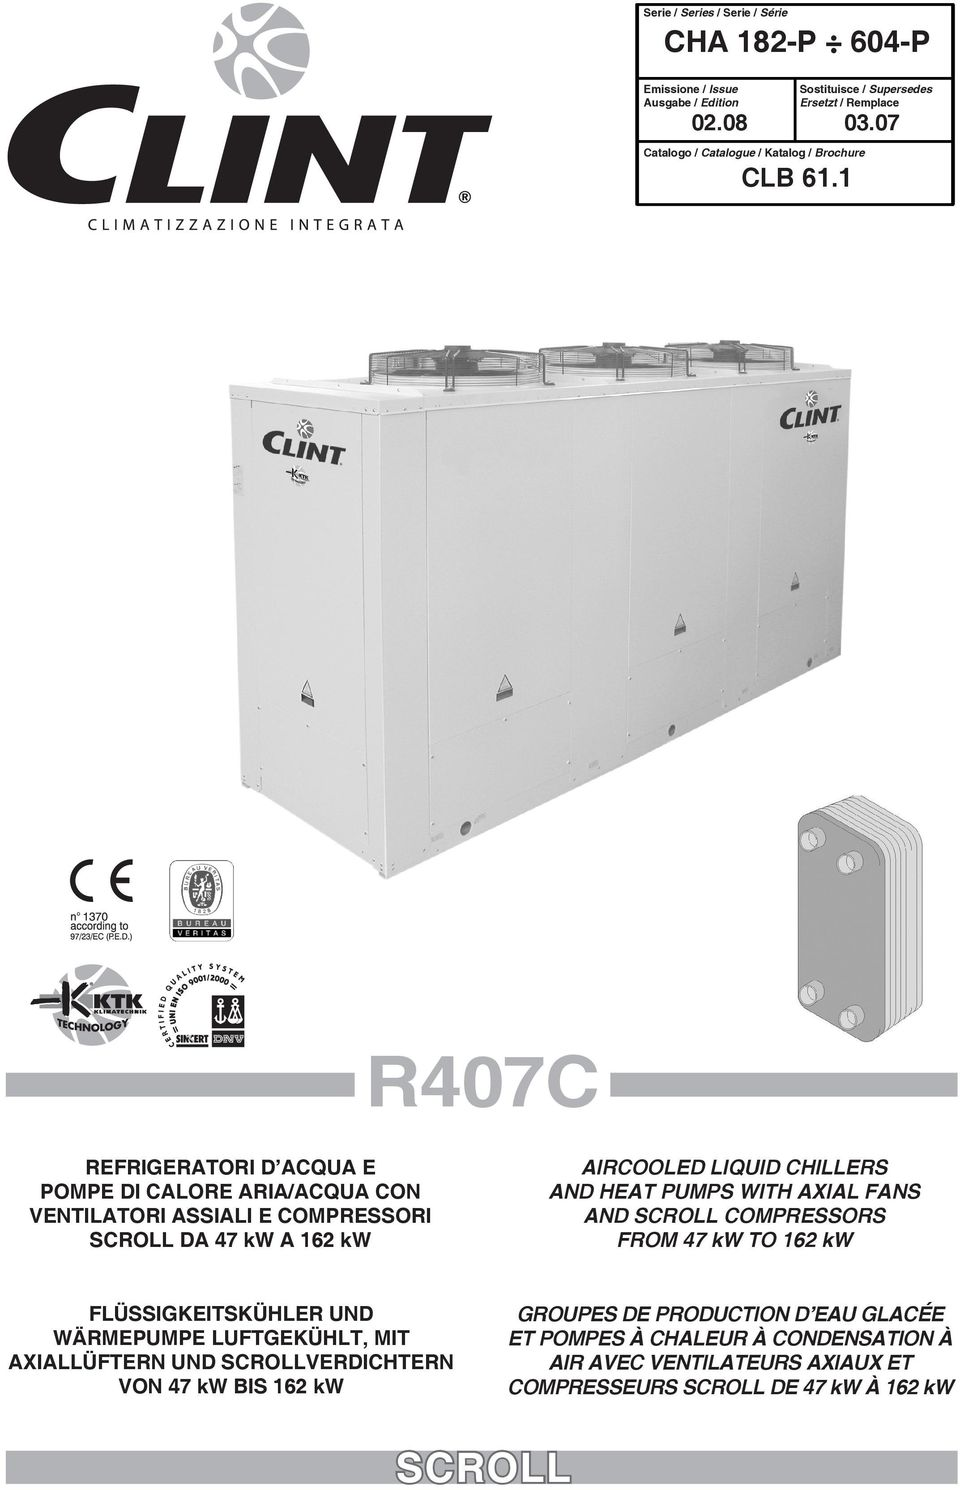 07 R407C REFRIGERATORI D ACQUA E POMPE DI CALORE ARIA/ACQUA CON VENTILATORI ASSIALI E COMPRESSORI SCROLL DA 47 kw A 162 kw AIRCOOLED LIQUID CHILLERS AND HEAT PUMPS